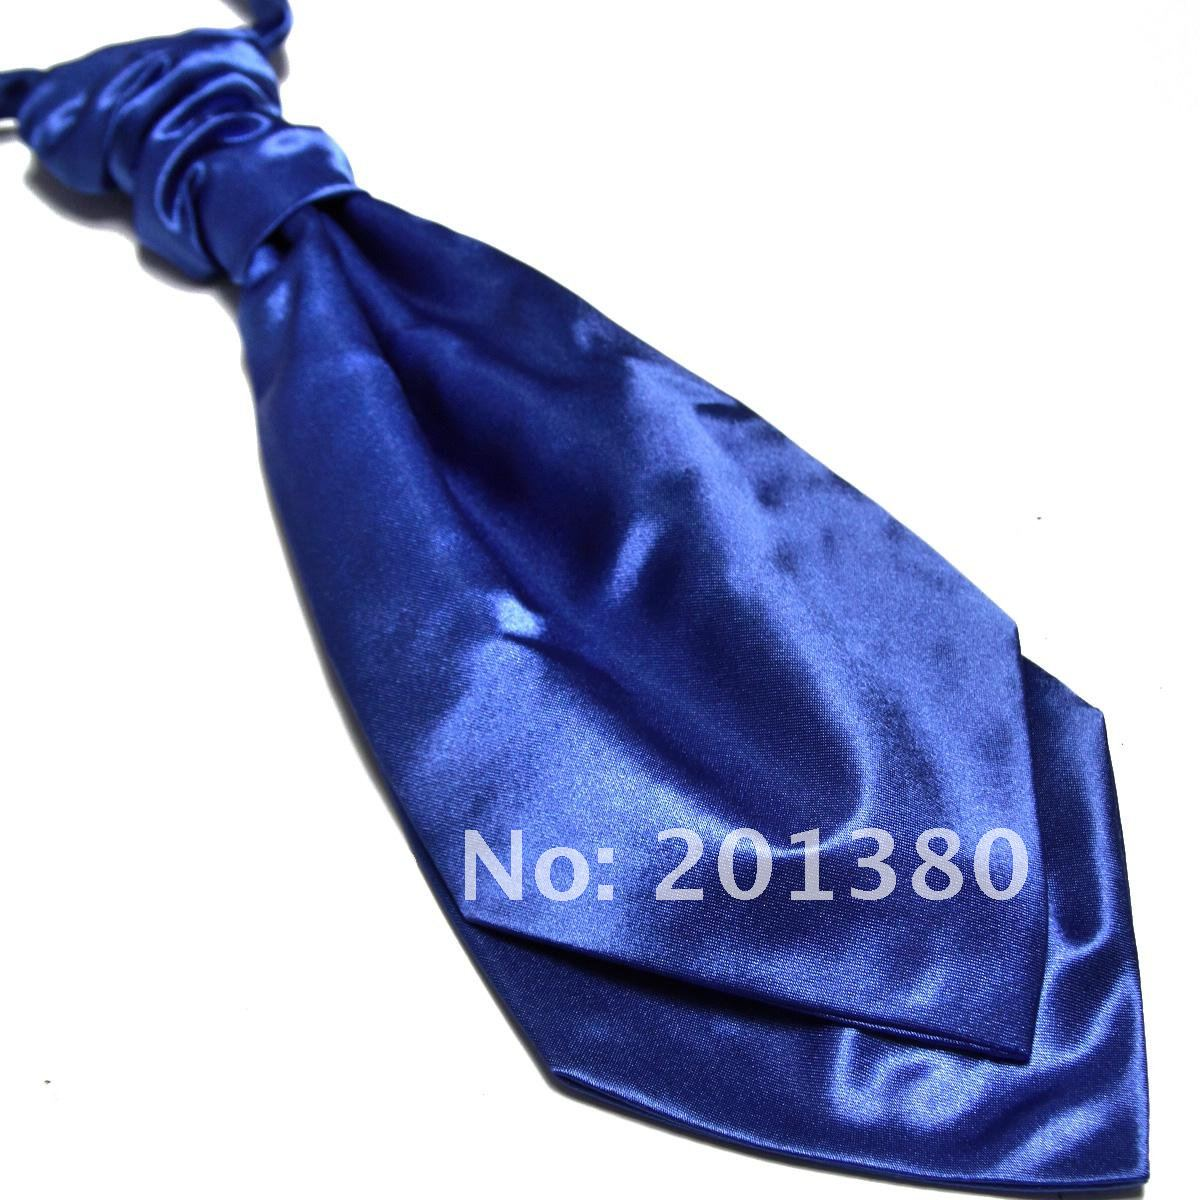 2019 Ties For Men Cravat Solid Color Necktie Ascot Wedding Copy Silk Solid Color Fashion Polyester Gravata Tie